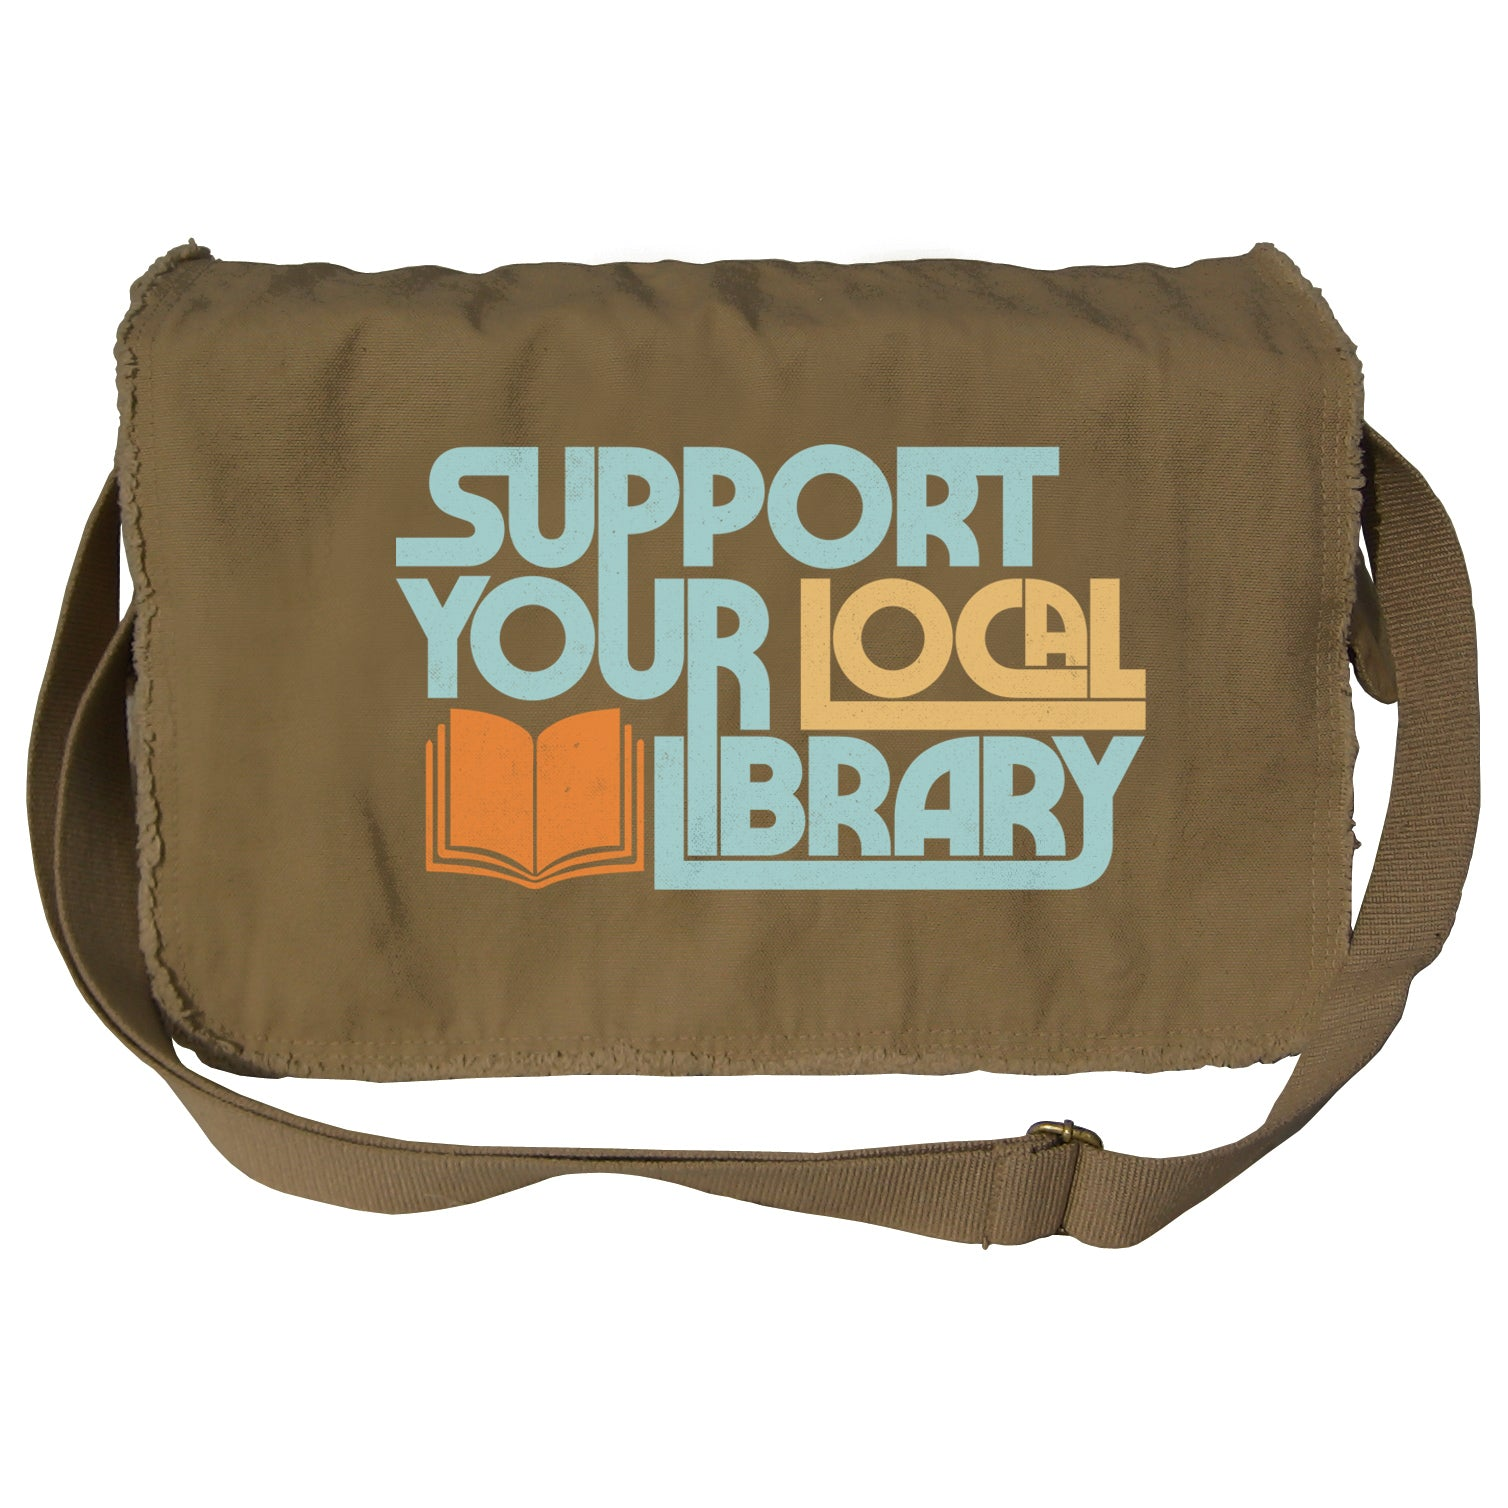 Support Your Local Library Messenger Bag